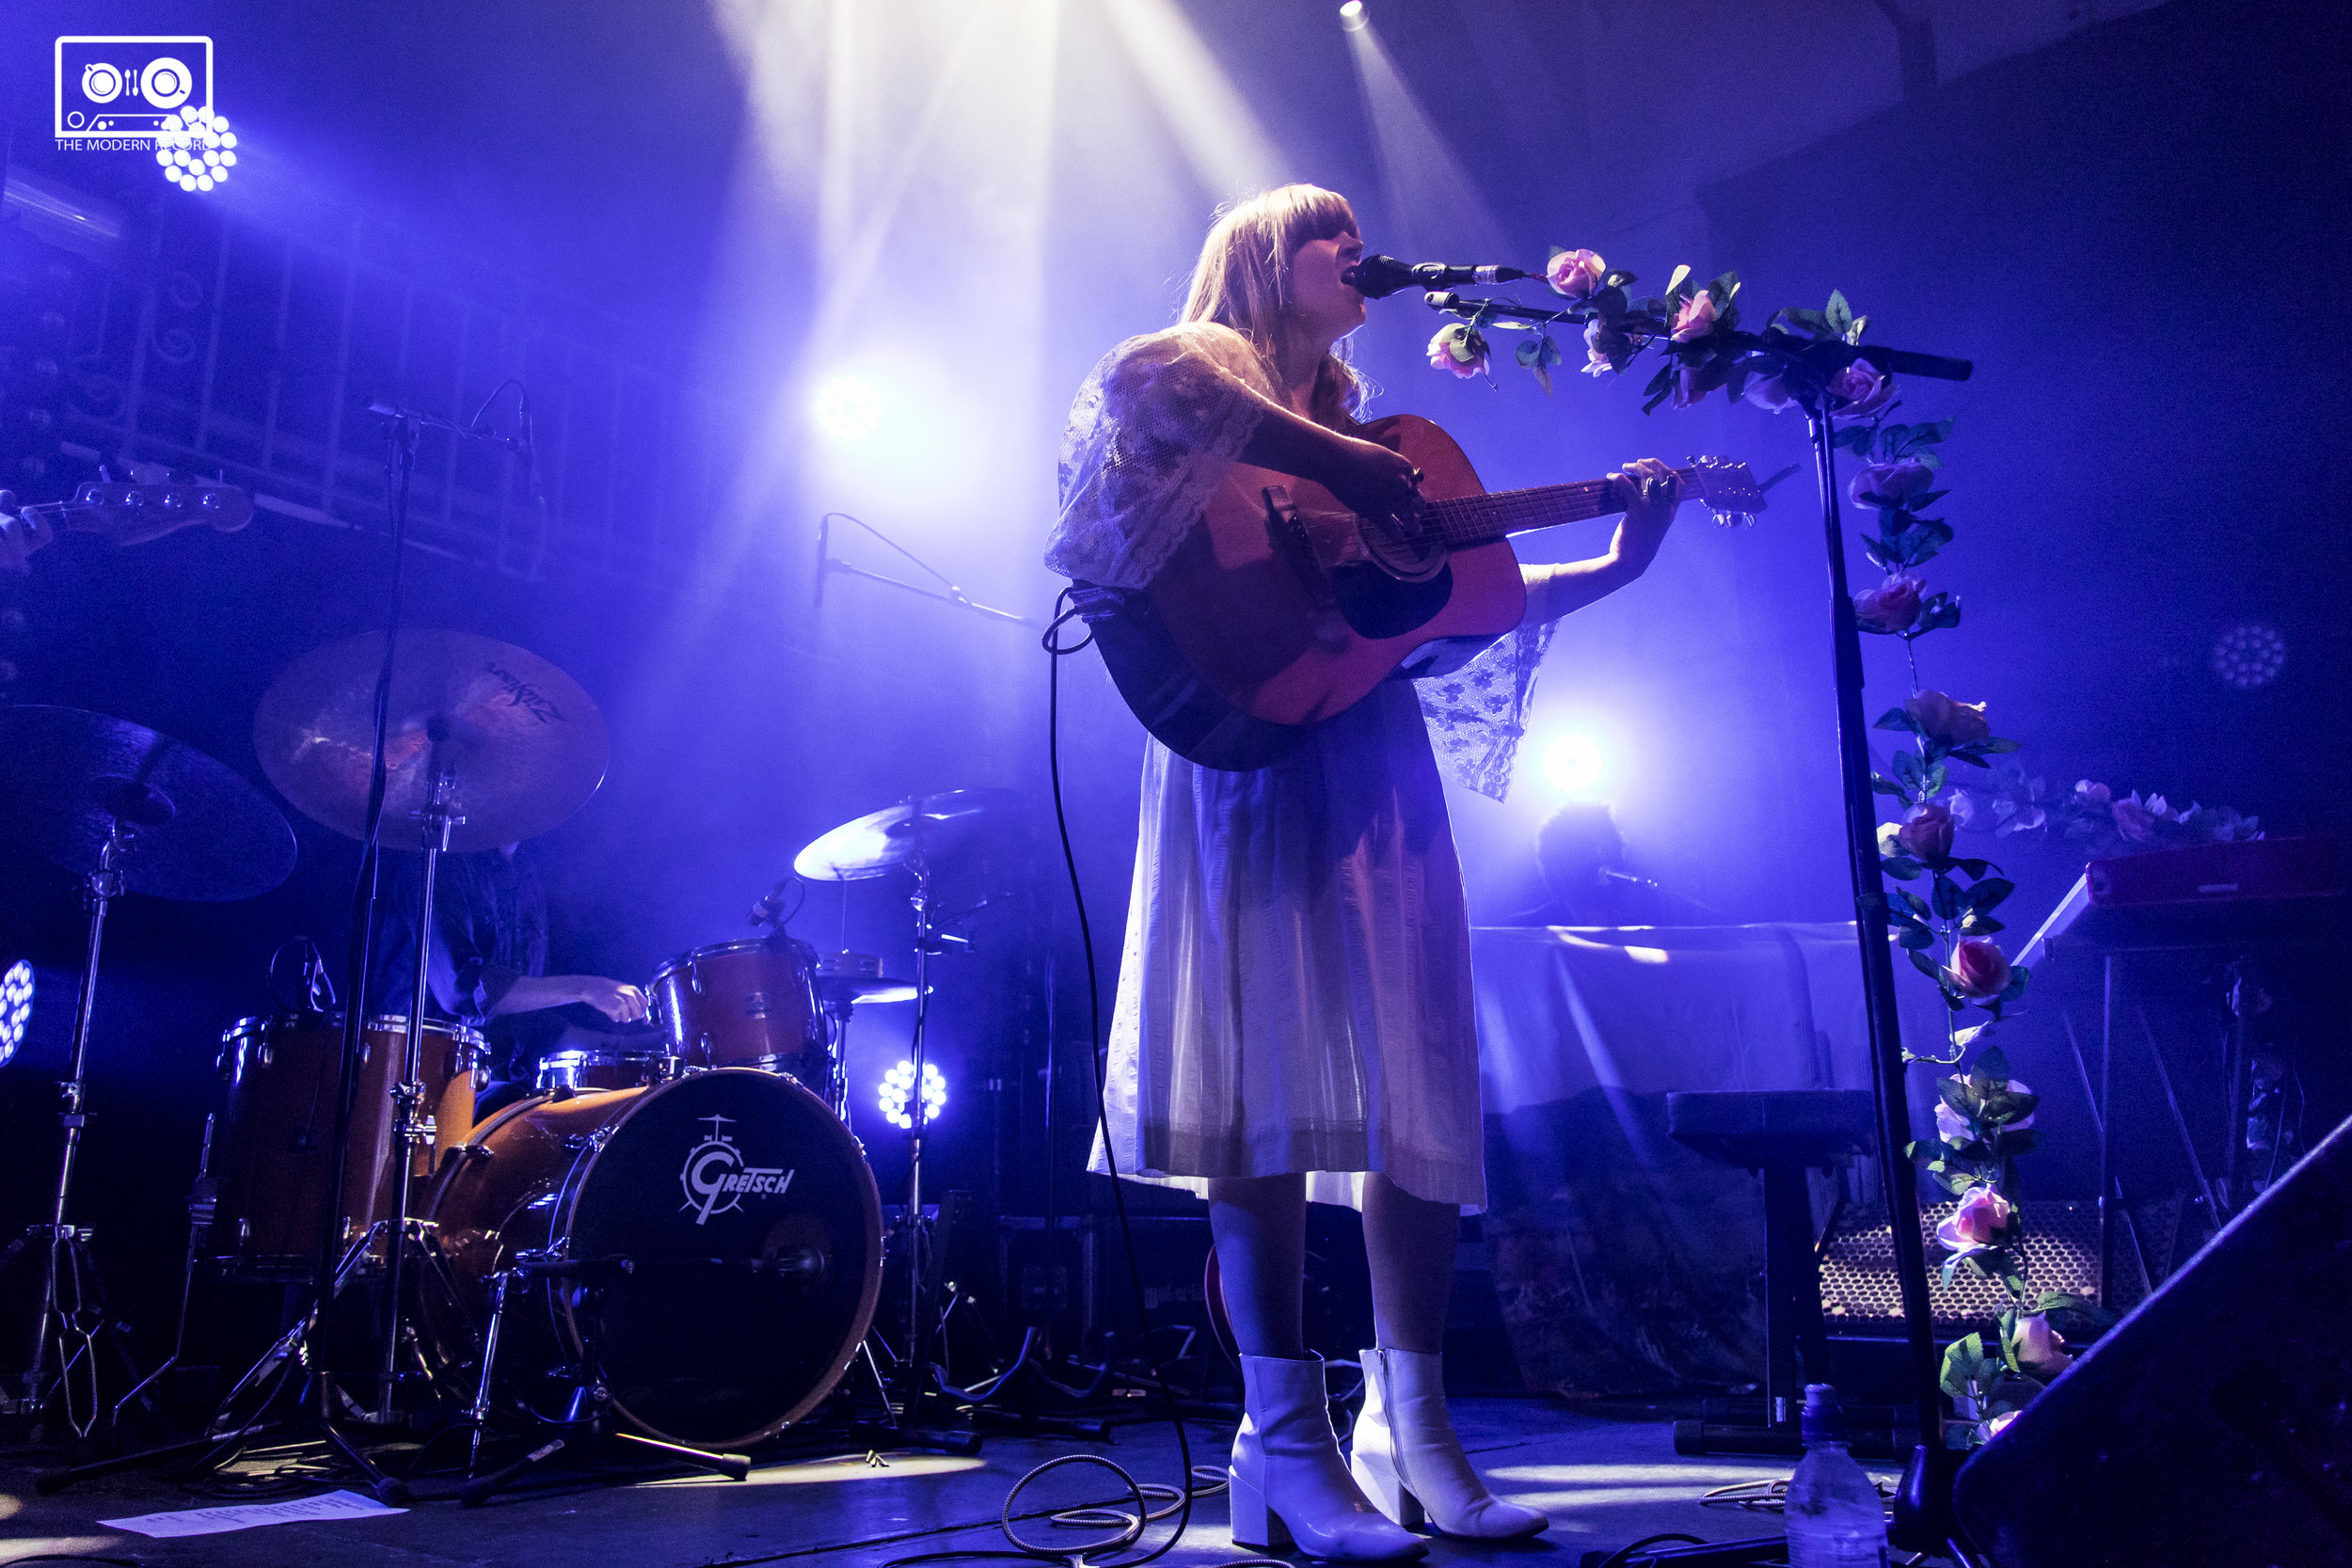 COURTNEY MARIE ANDREWS PERFORMING AT SUMMERHALL, EDINBURGH - 19.04.18  PICTURE: KENDALL WILSON PHOTOGRAPHY